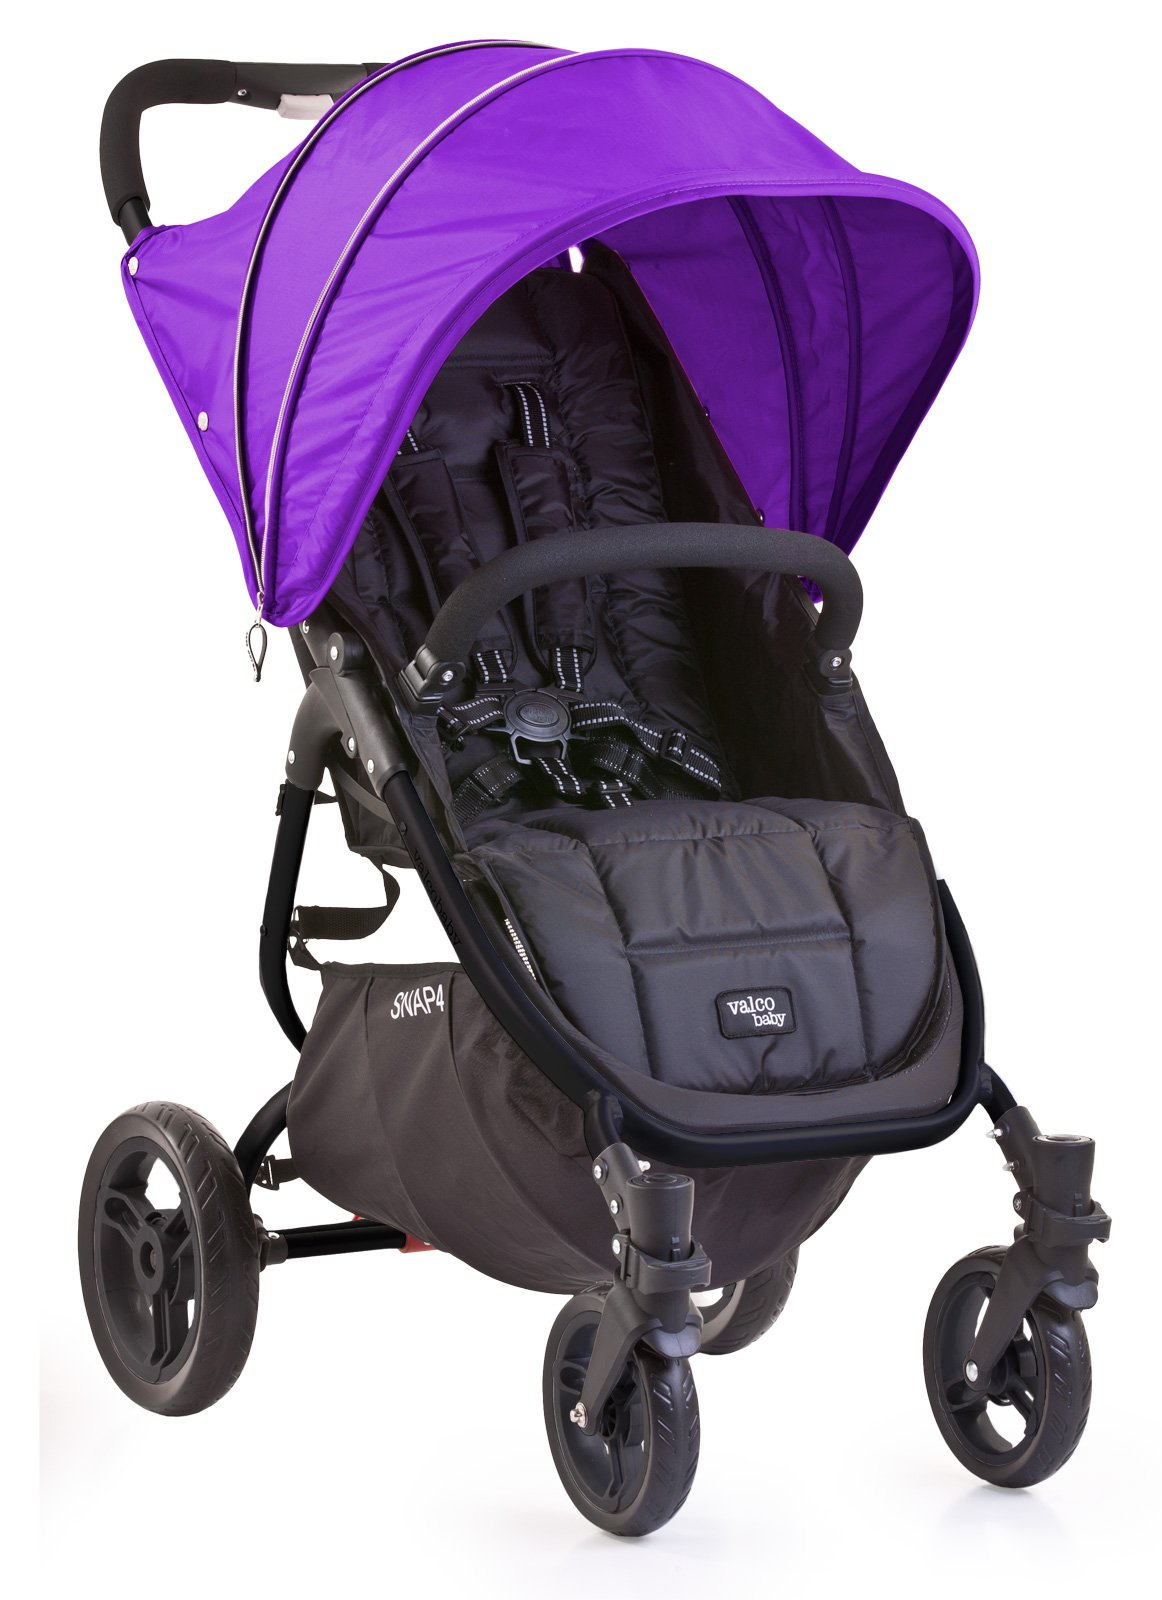 Valco Baby Snap & Snap4 Vogue Set (Hood, Harness Covers) (Deep Purple (no bootie))